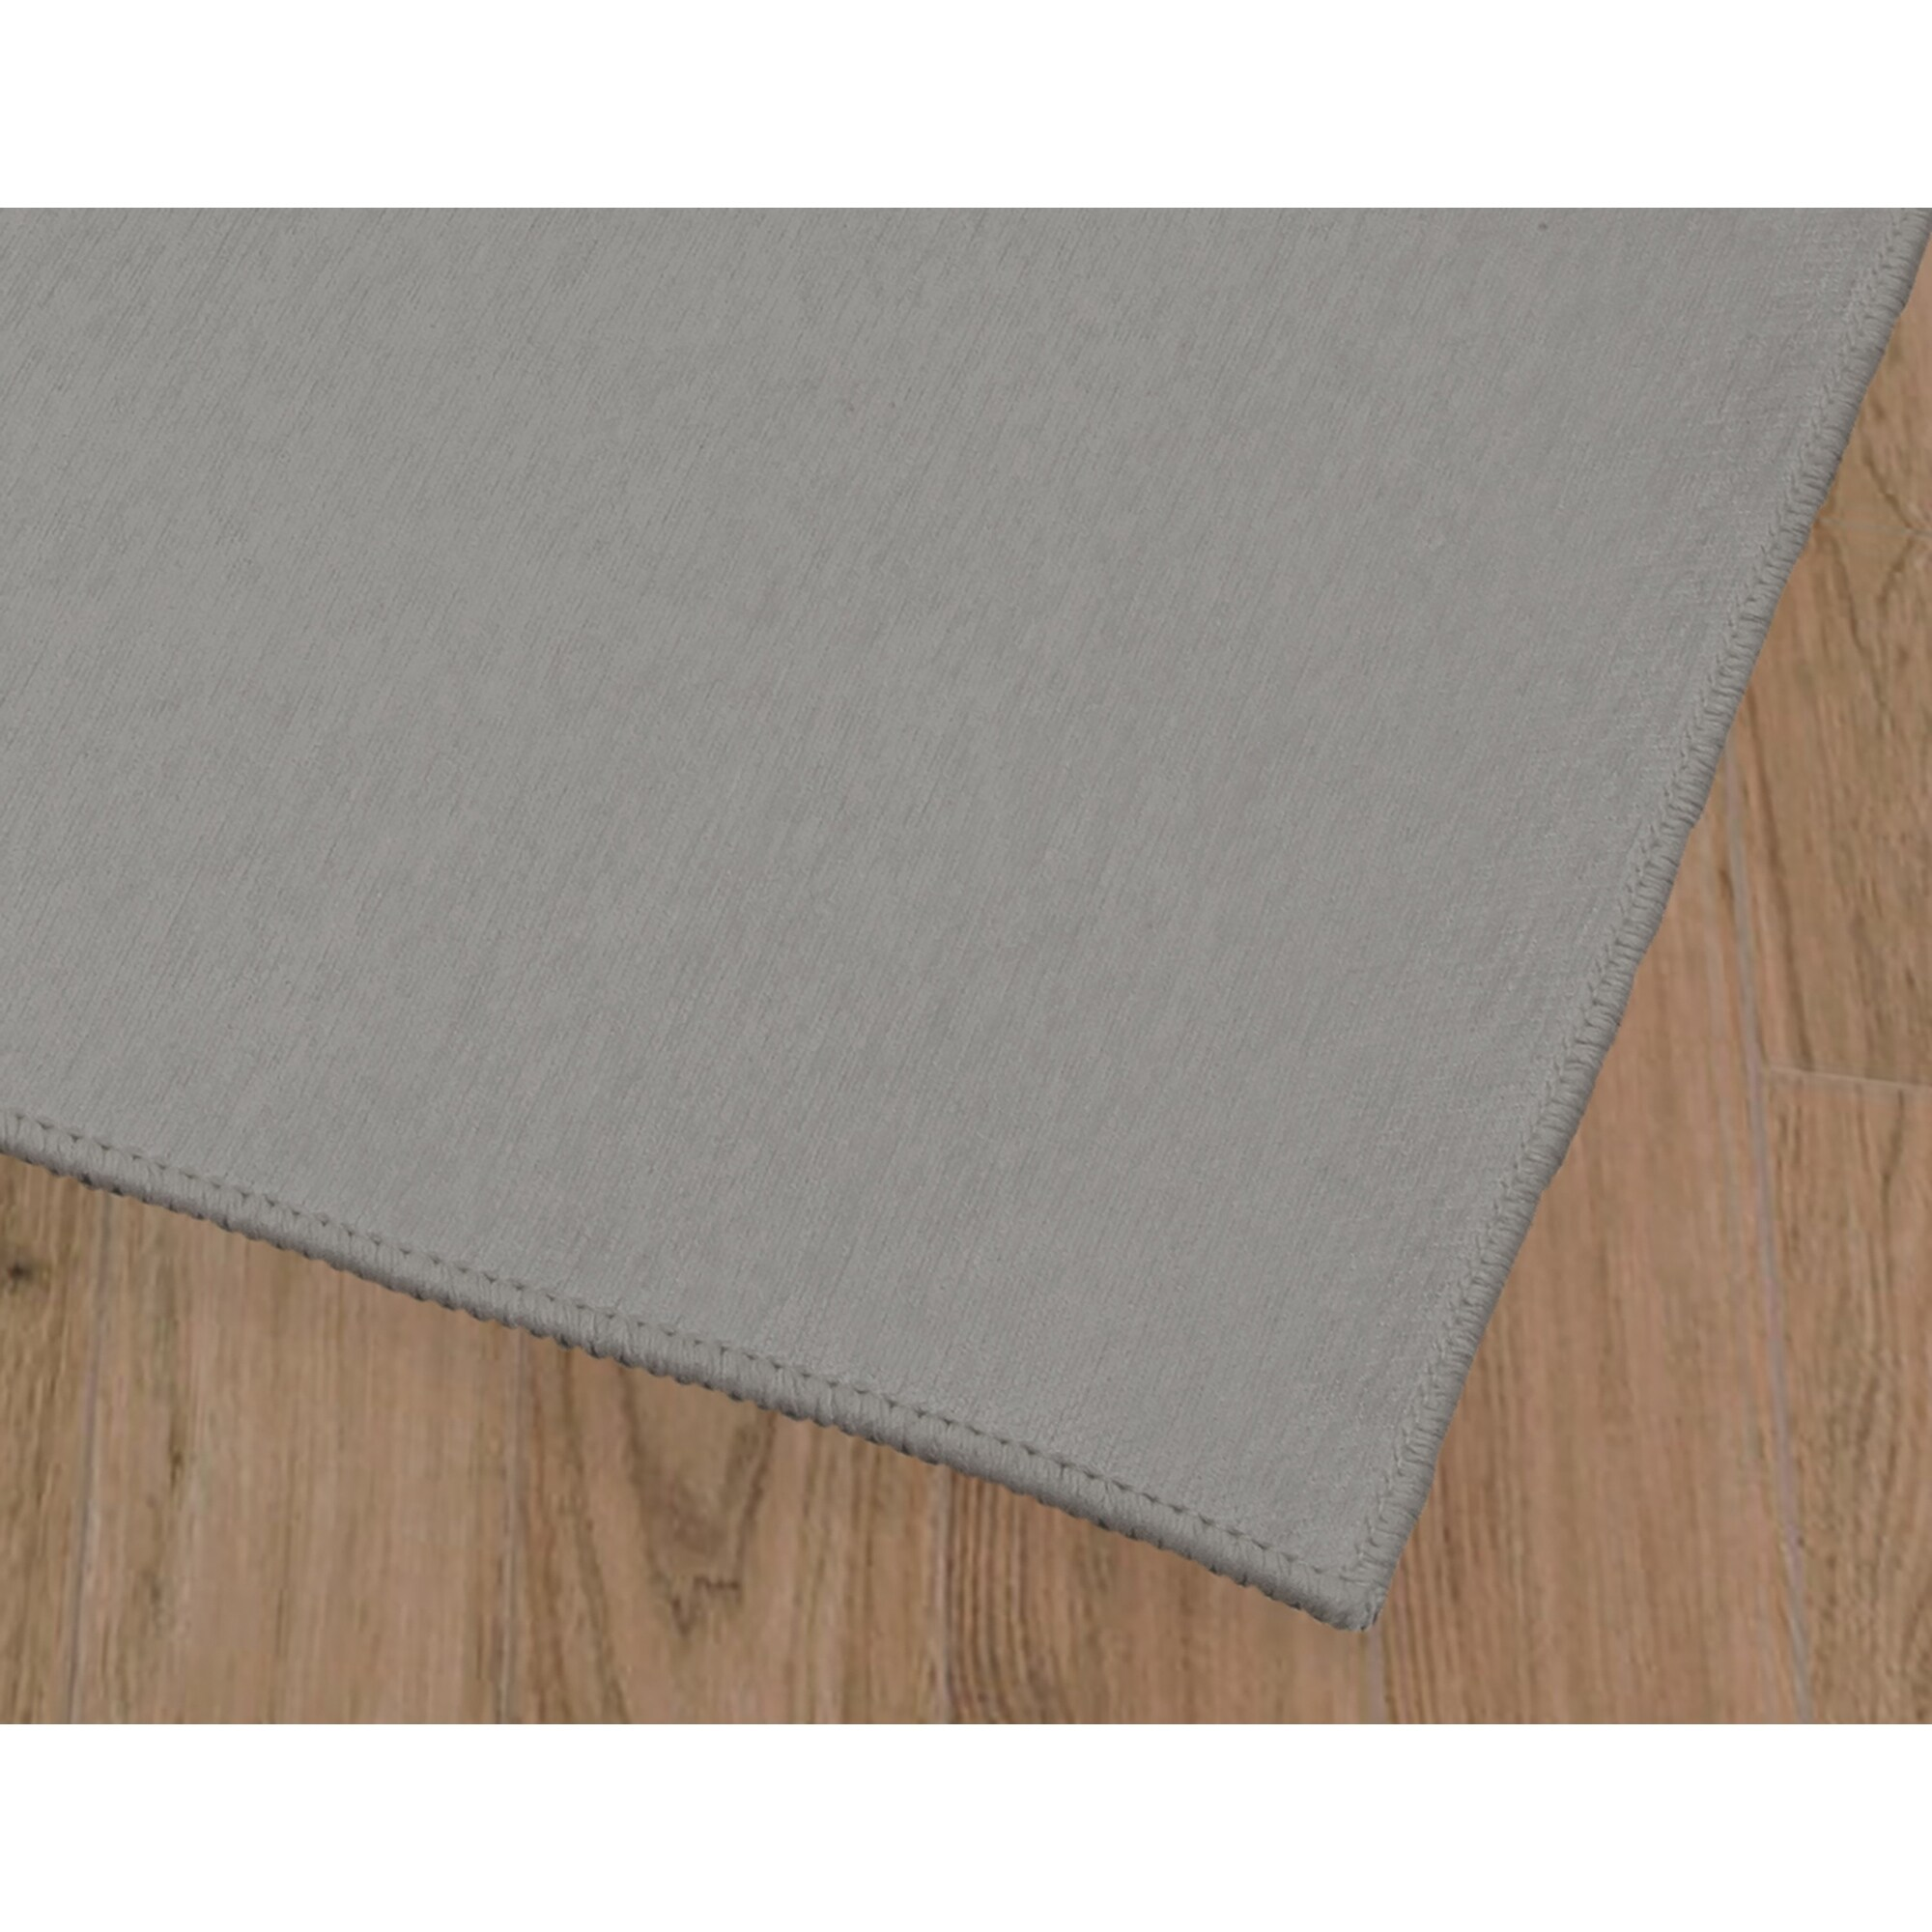 Nautical Horizon Taupe Kitchen Mat By Greg Conte Overstock 32029158